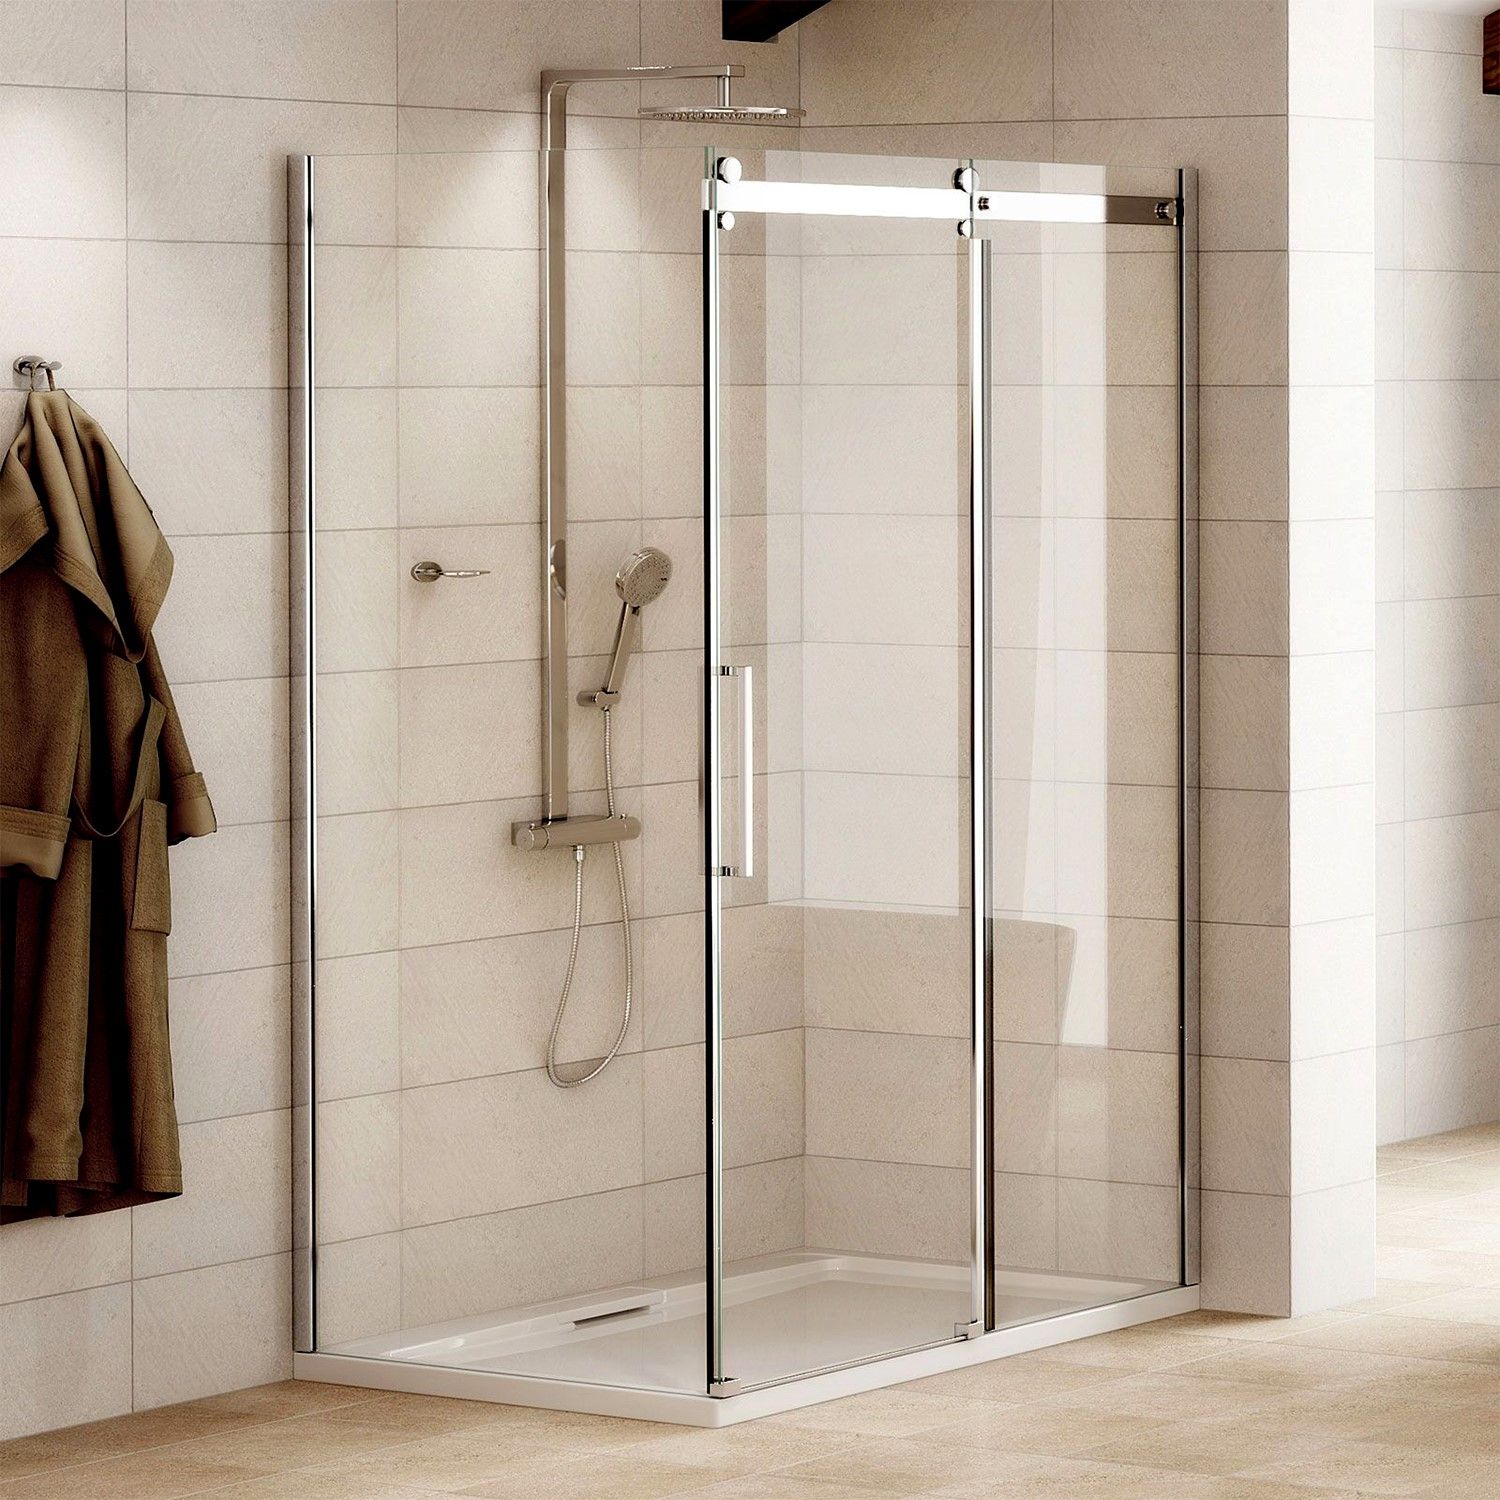 1000 X 900mm Frameless Sliding Shower Enclosure 8mm Glass Aquafloe Elite Ii